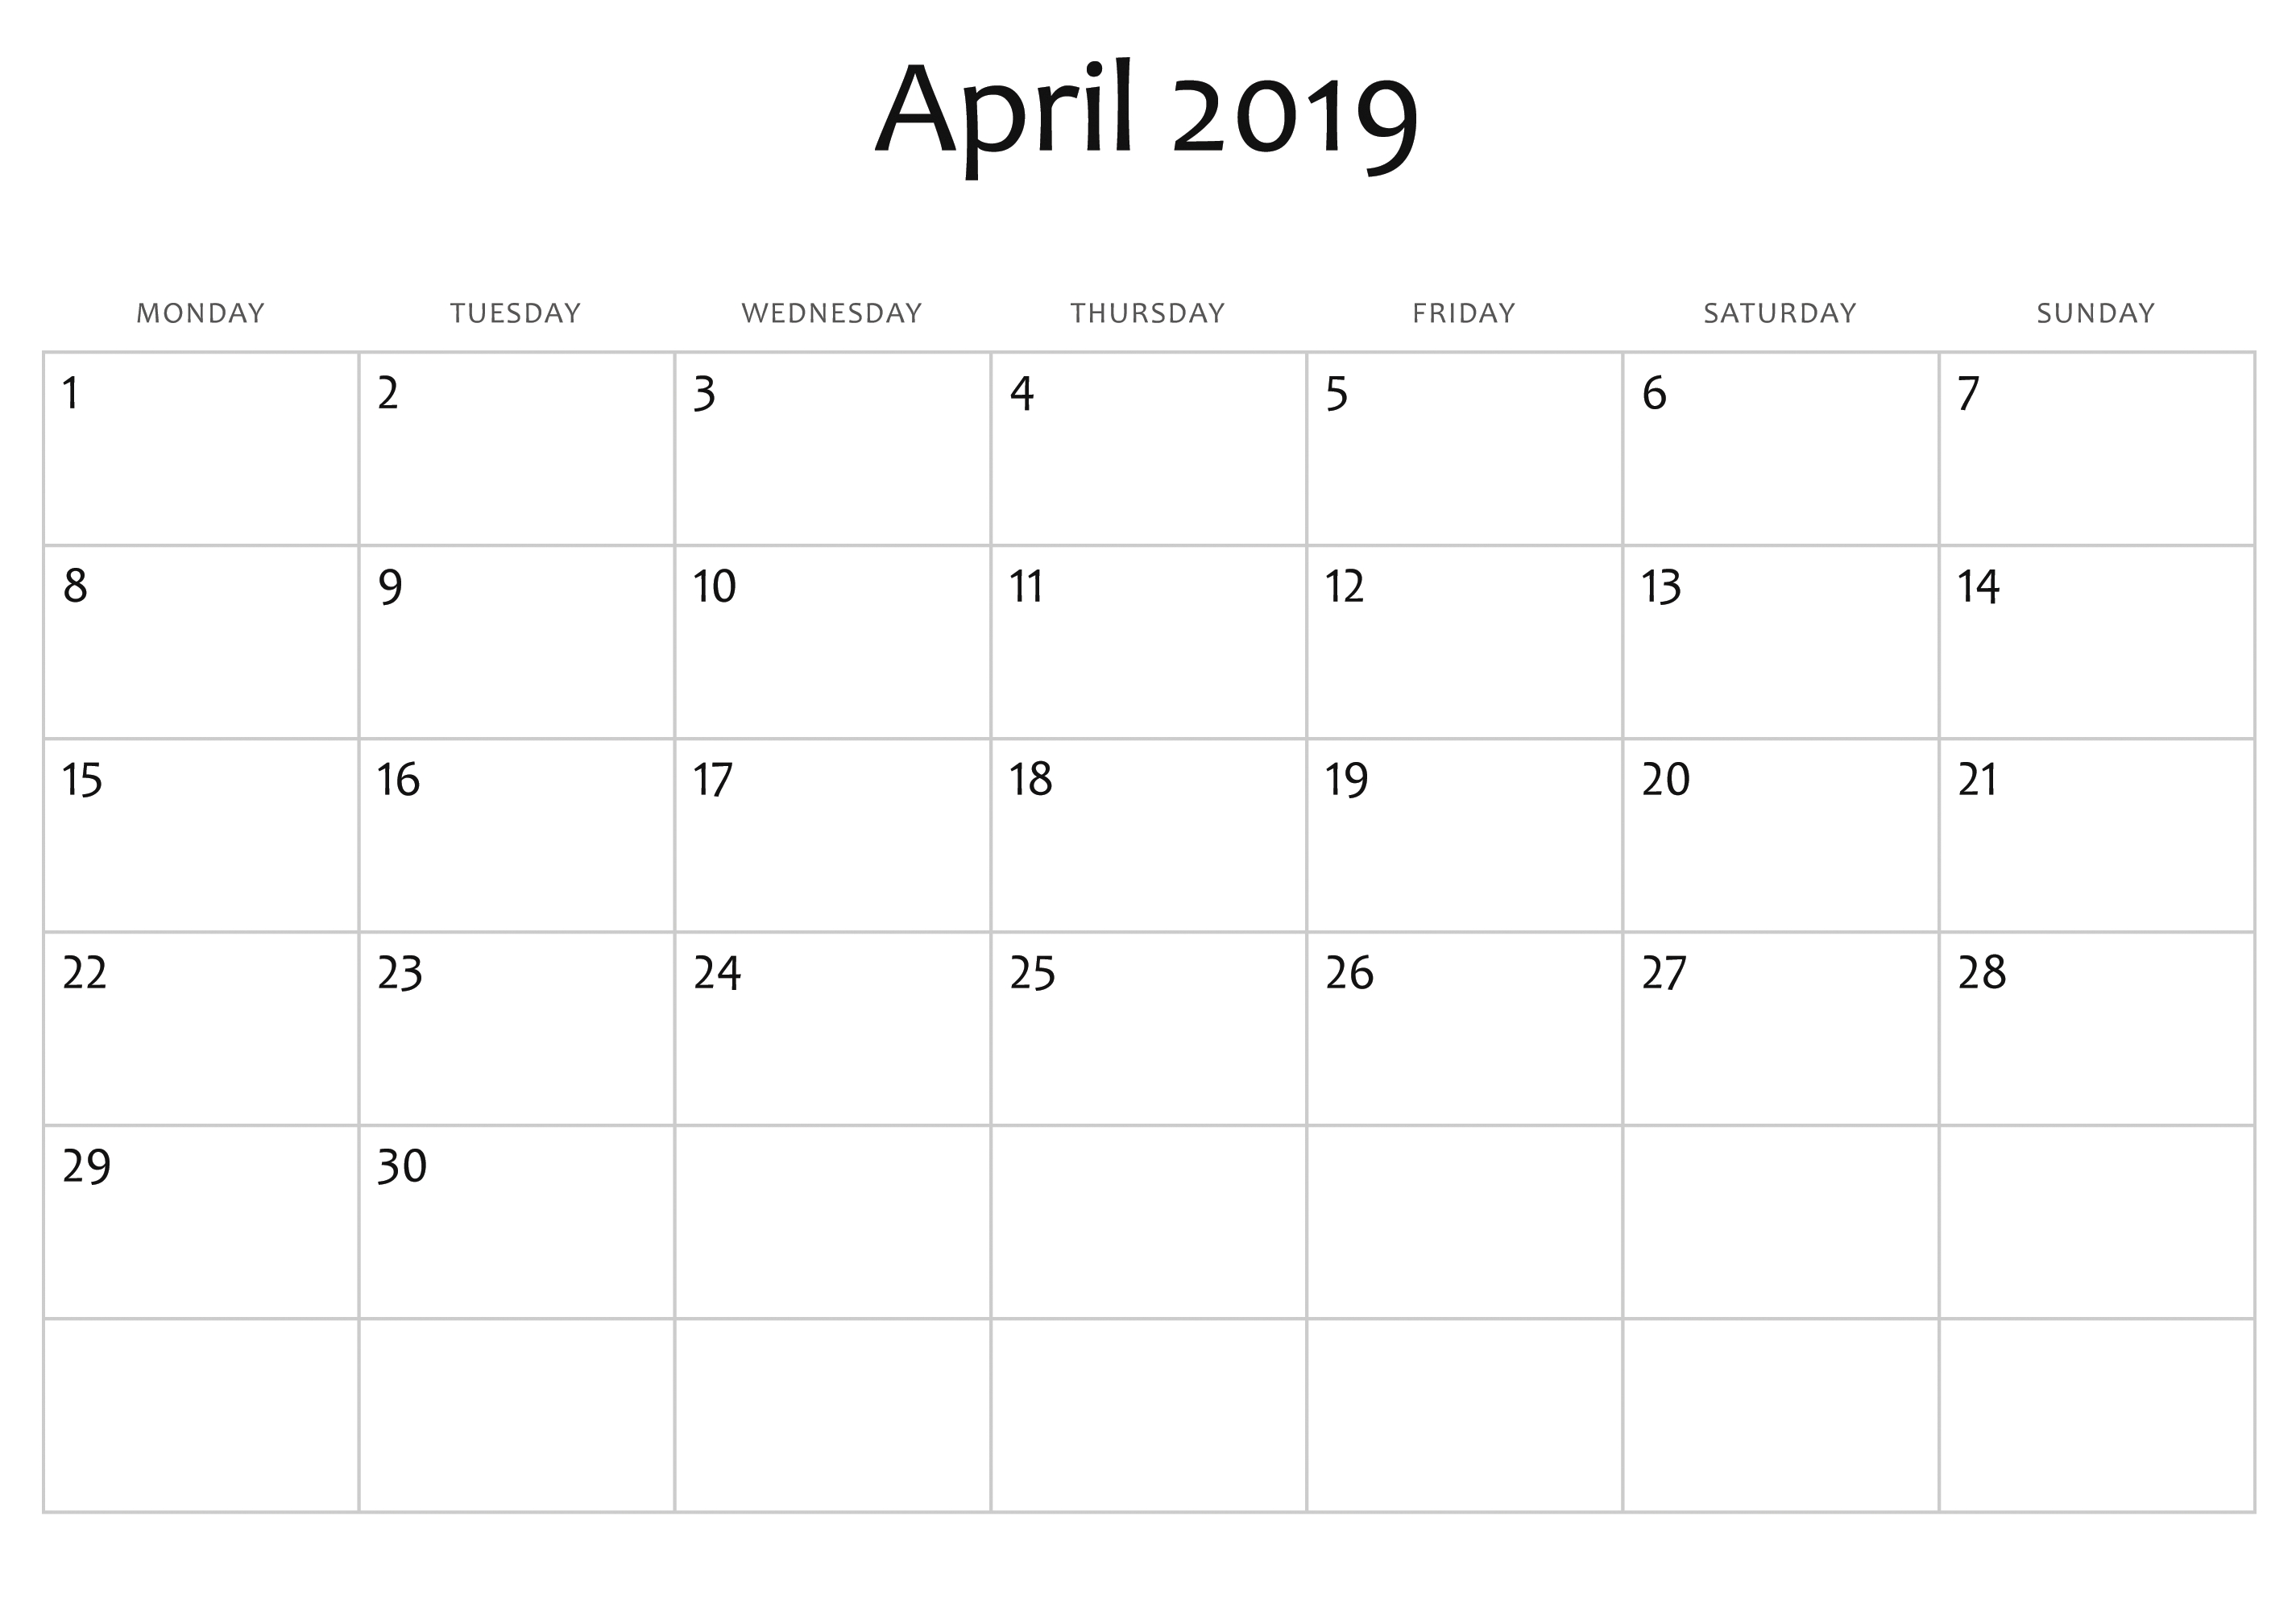 Fillable Blank April 2019 Calendar Printable Template #tumblr regarding Free Printable Calendars 2020 Waterproof